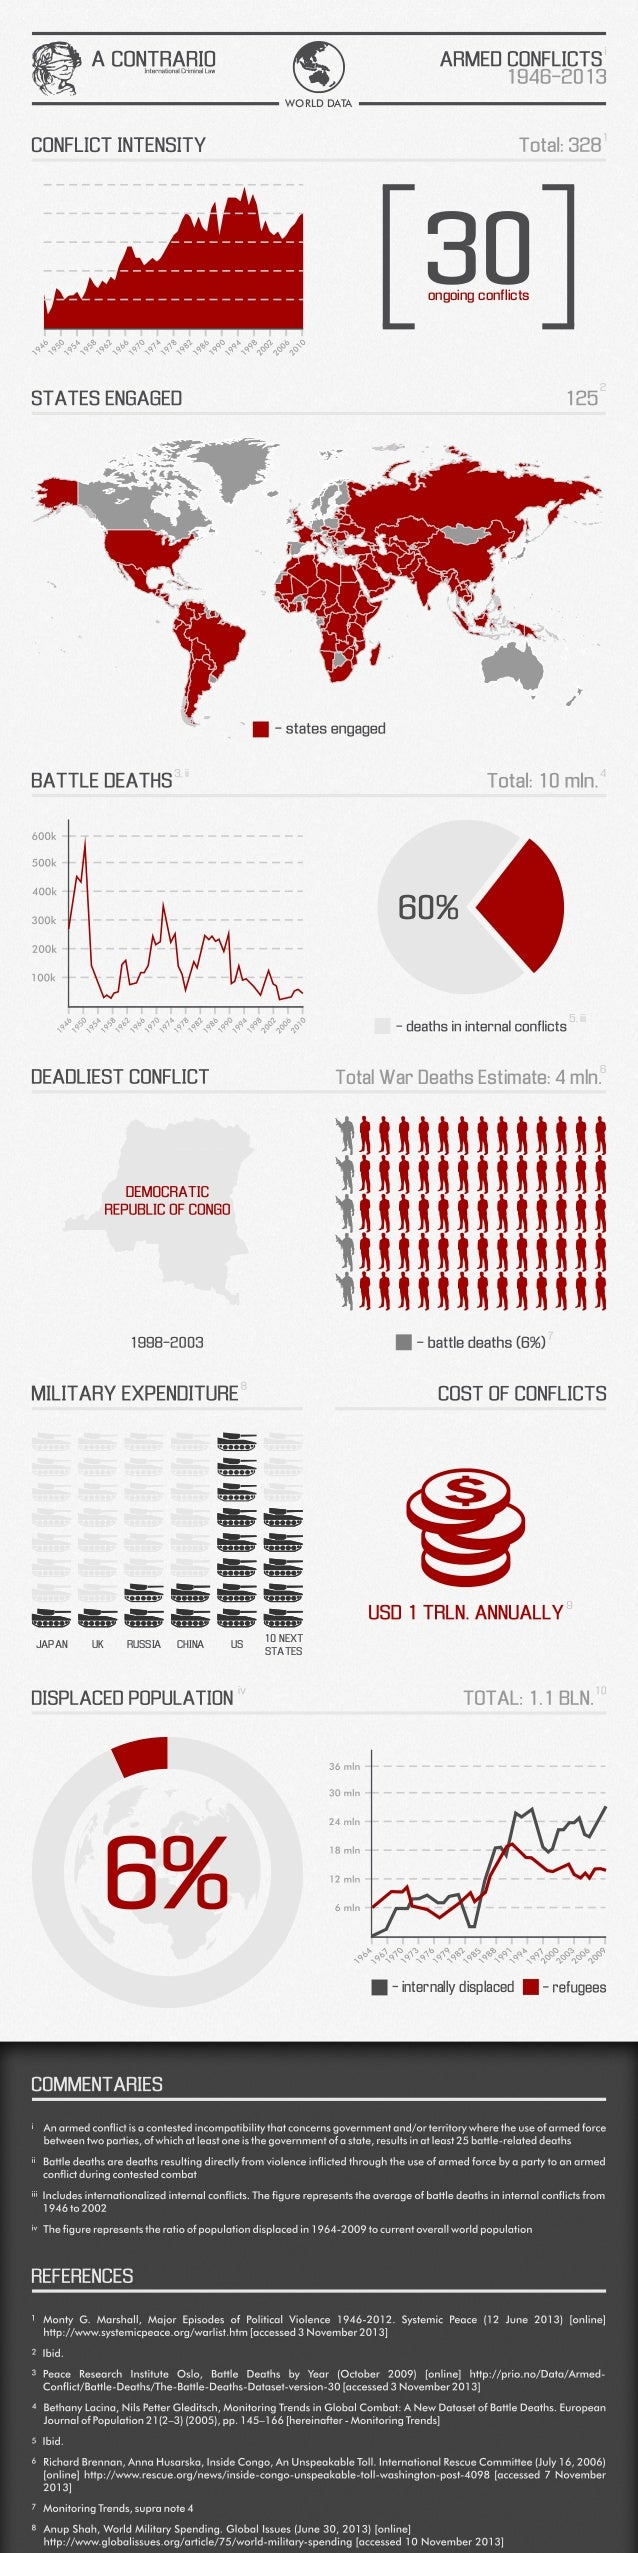 WORLD DATA 2 4 1 ongoing conflicts JAPAN UK RUSSIA CHINA US 10 NEXT STATES Total War Deaths Estimate: 4 mln. 6 , ii - inte...